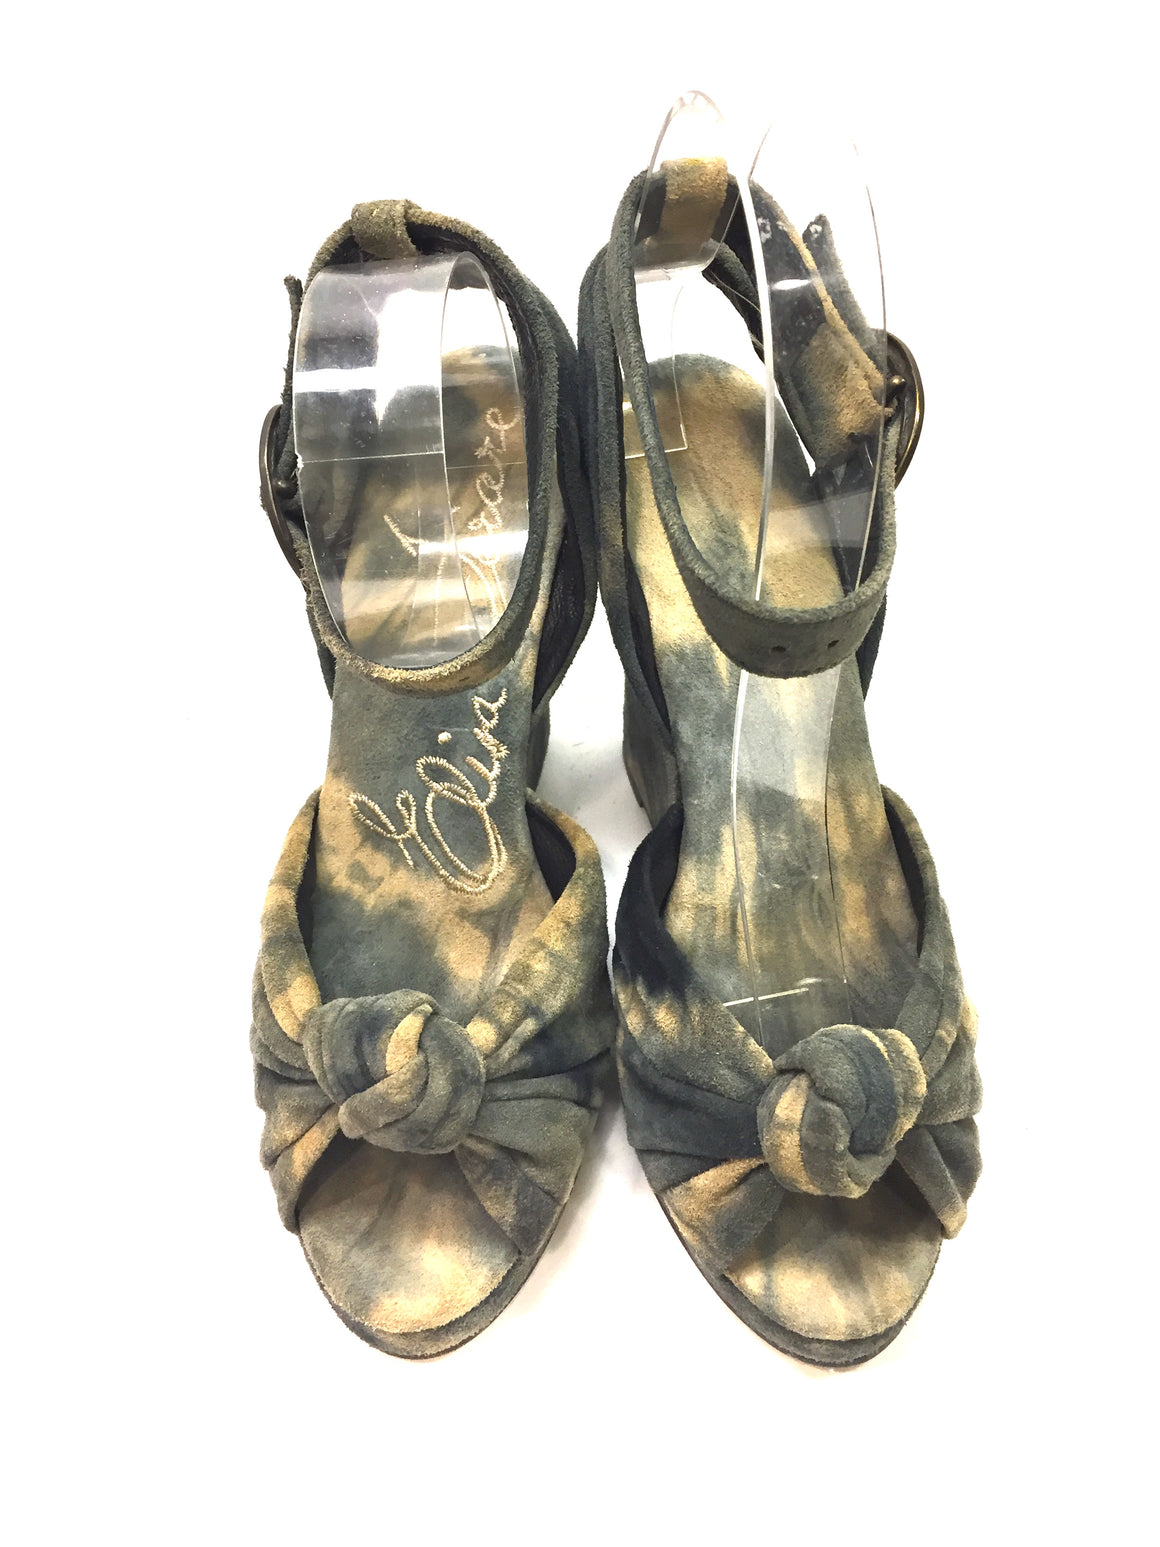 ELISA FERARE Gray/Taupe Tie-Dyed Suede Wedge AHeel Ankle-Strap Sandals Sz6